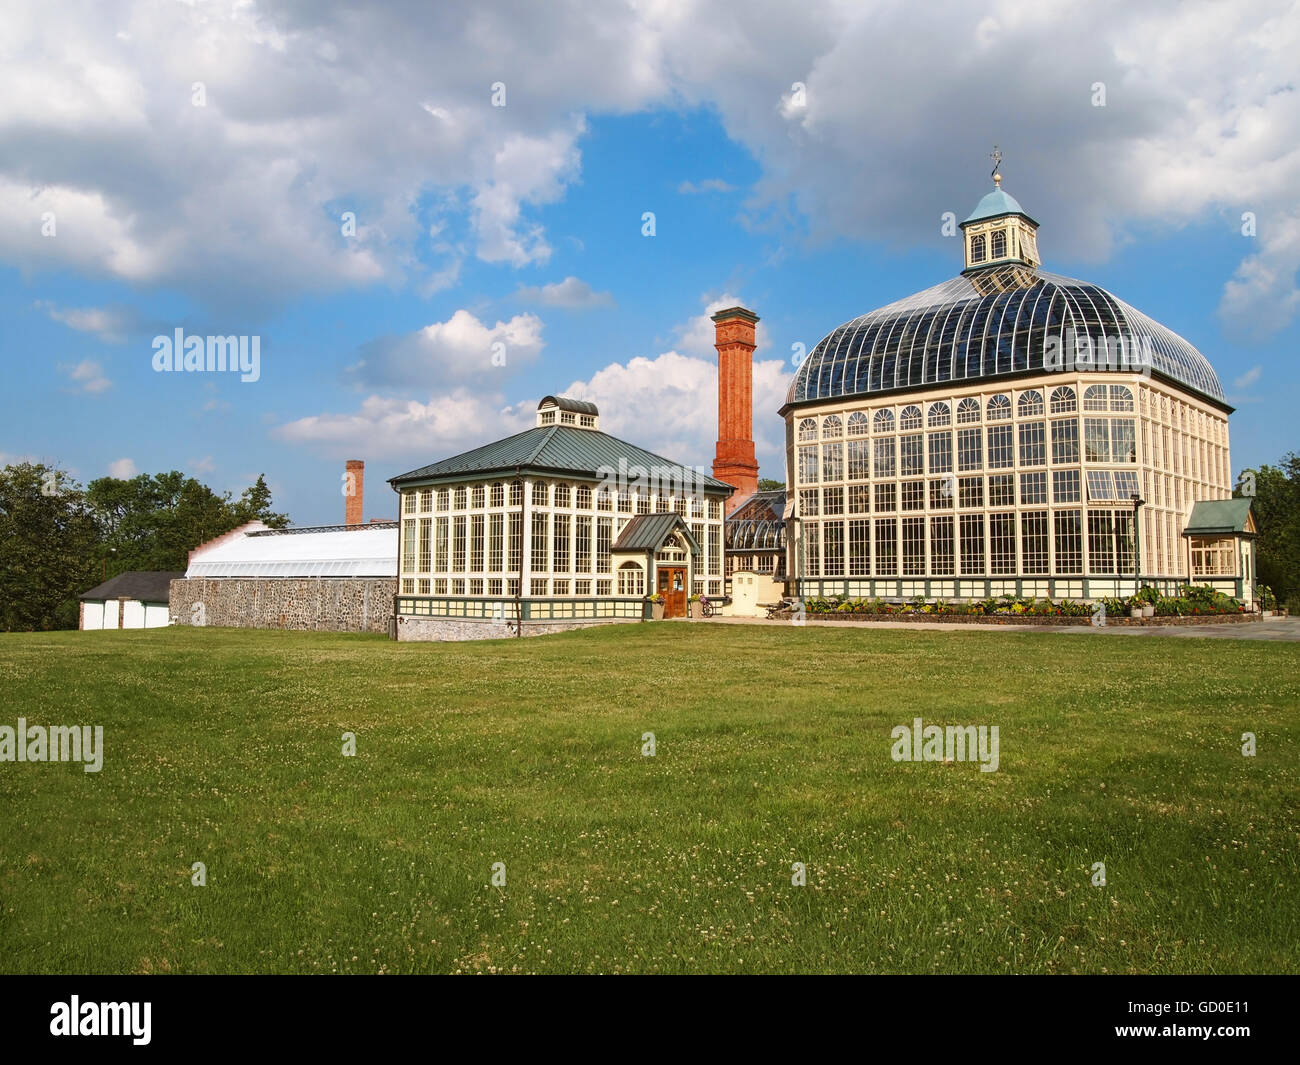 The Howard Peter Rawlings Conservatory and Botanic Gardens of Baltimore, in Druid Hill Park, in Baltimore, Maryland. - Stock Image